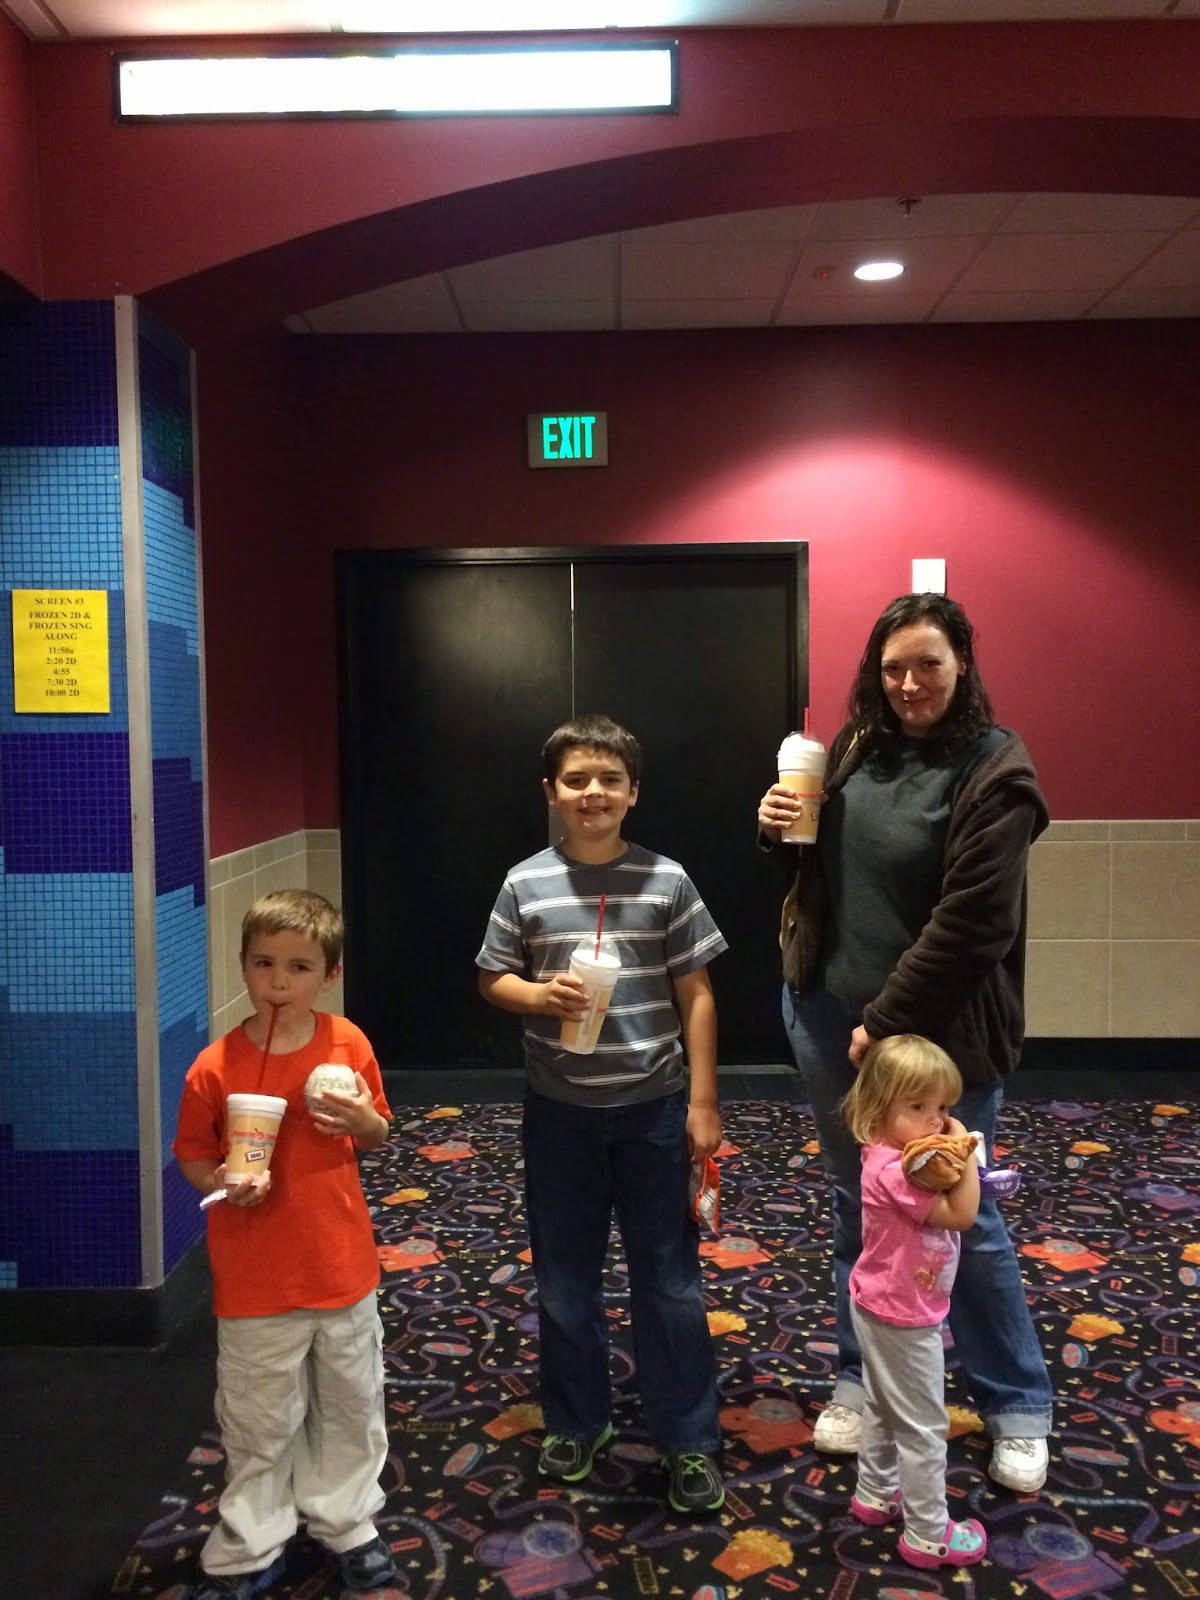 Even Though Amelia Had Never Been To A Movie Before, I Knew She'd Sit  Through It With No Problem Anna Was There To Fully Participate And